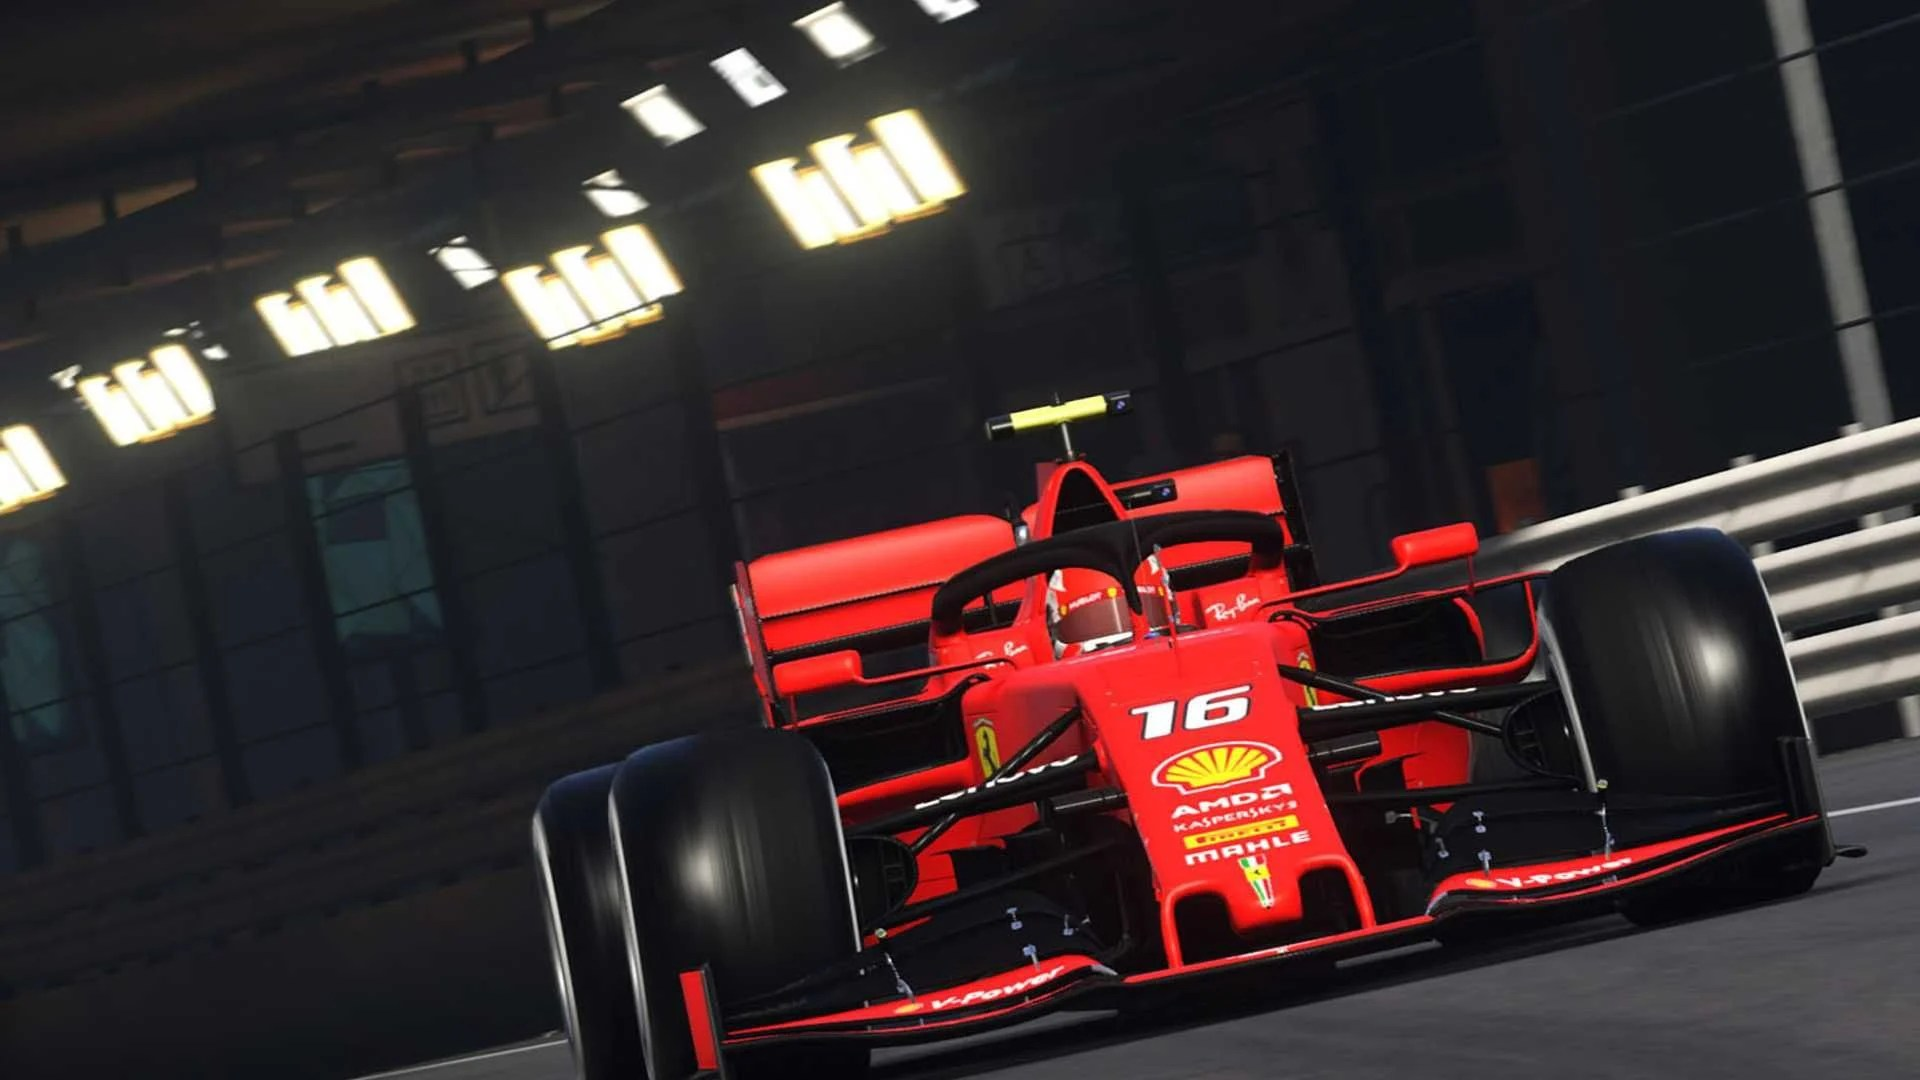 F1 2019 Review - F1 Racing At Its Best